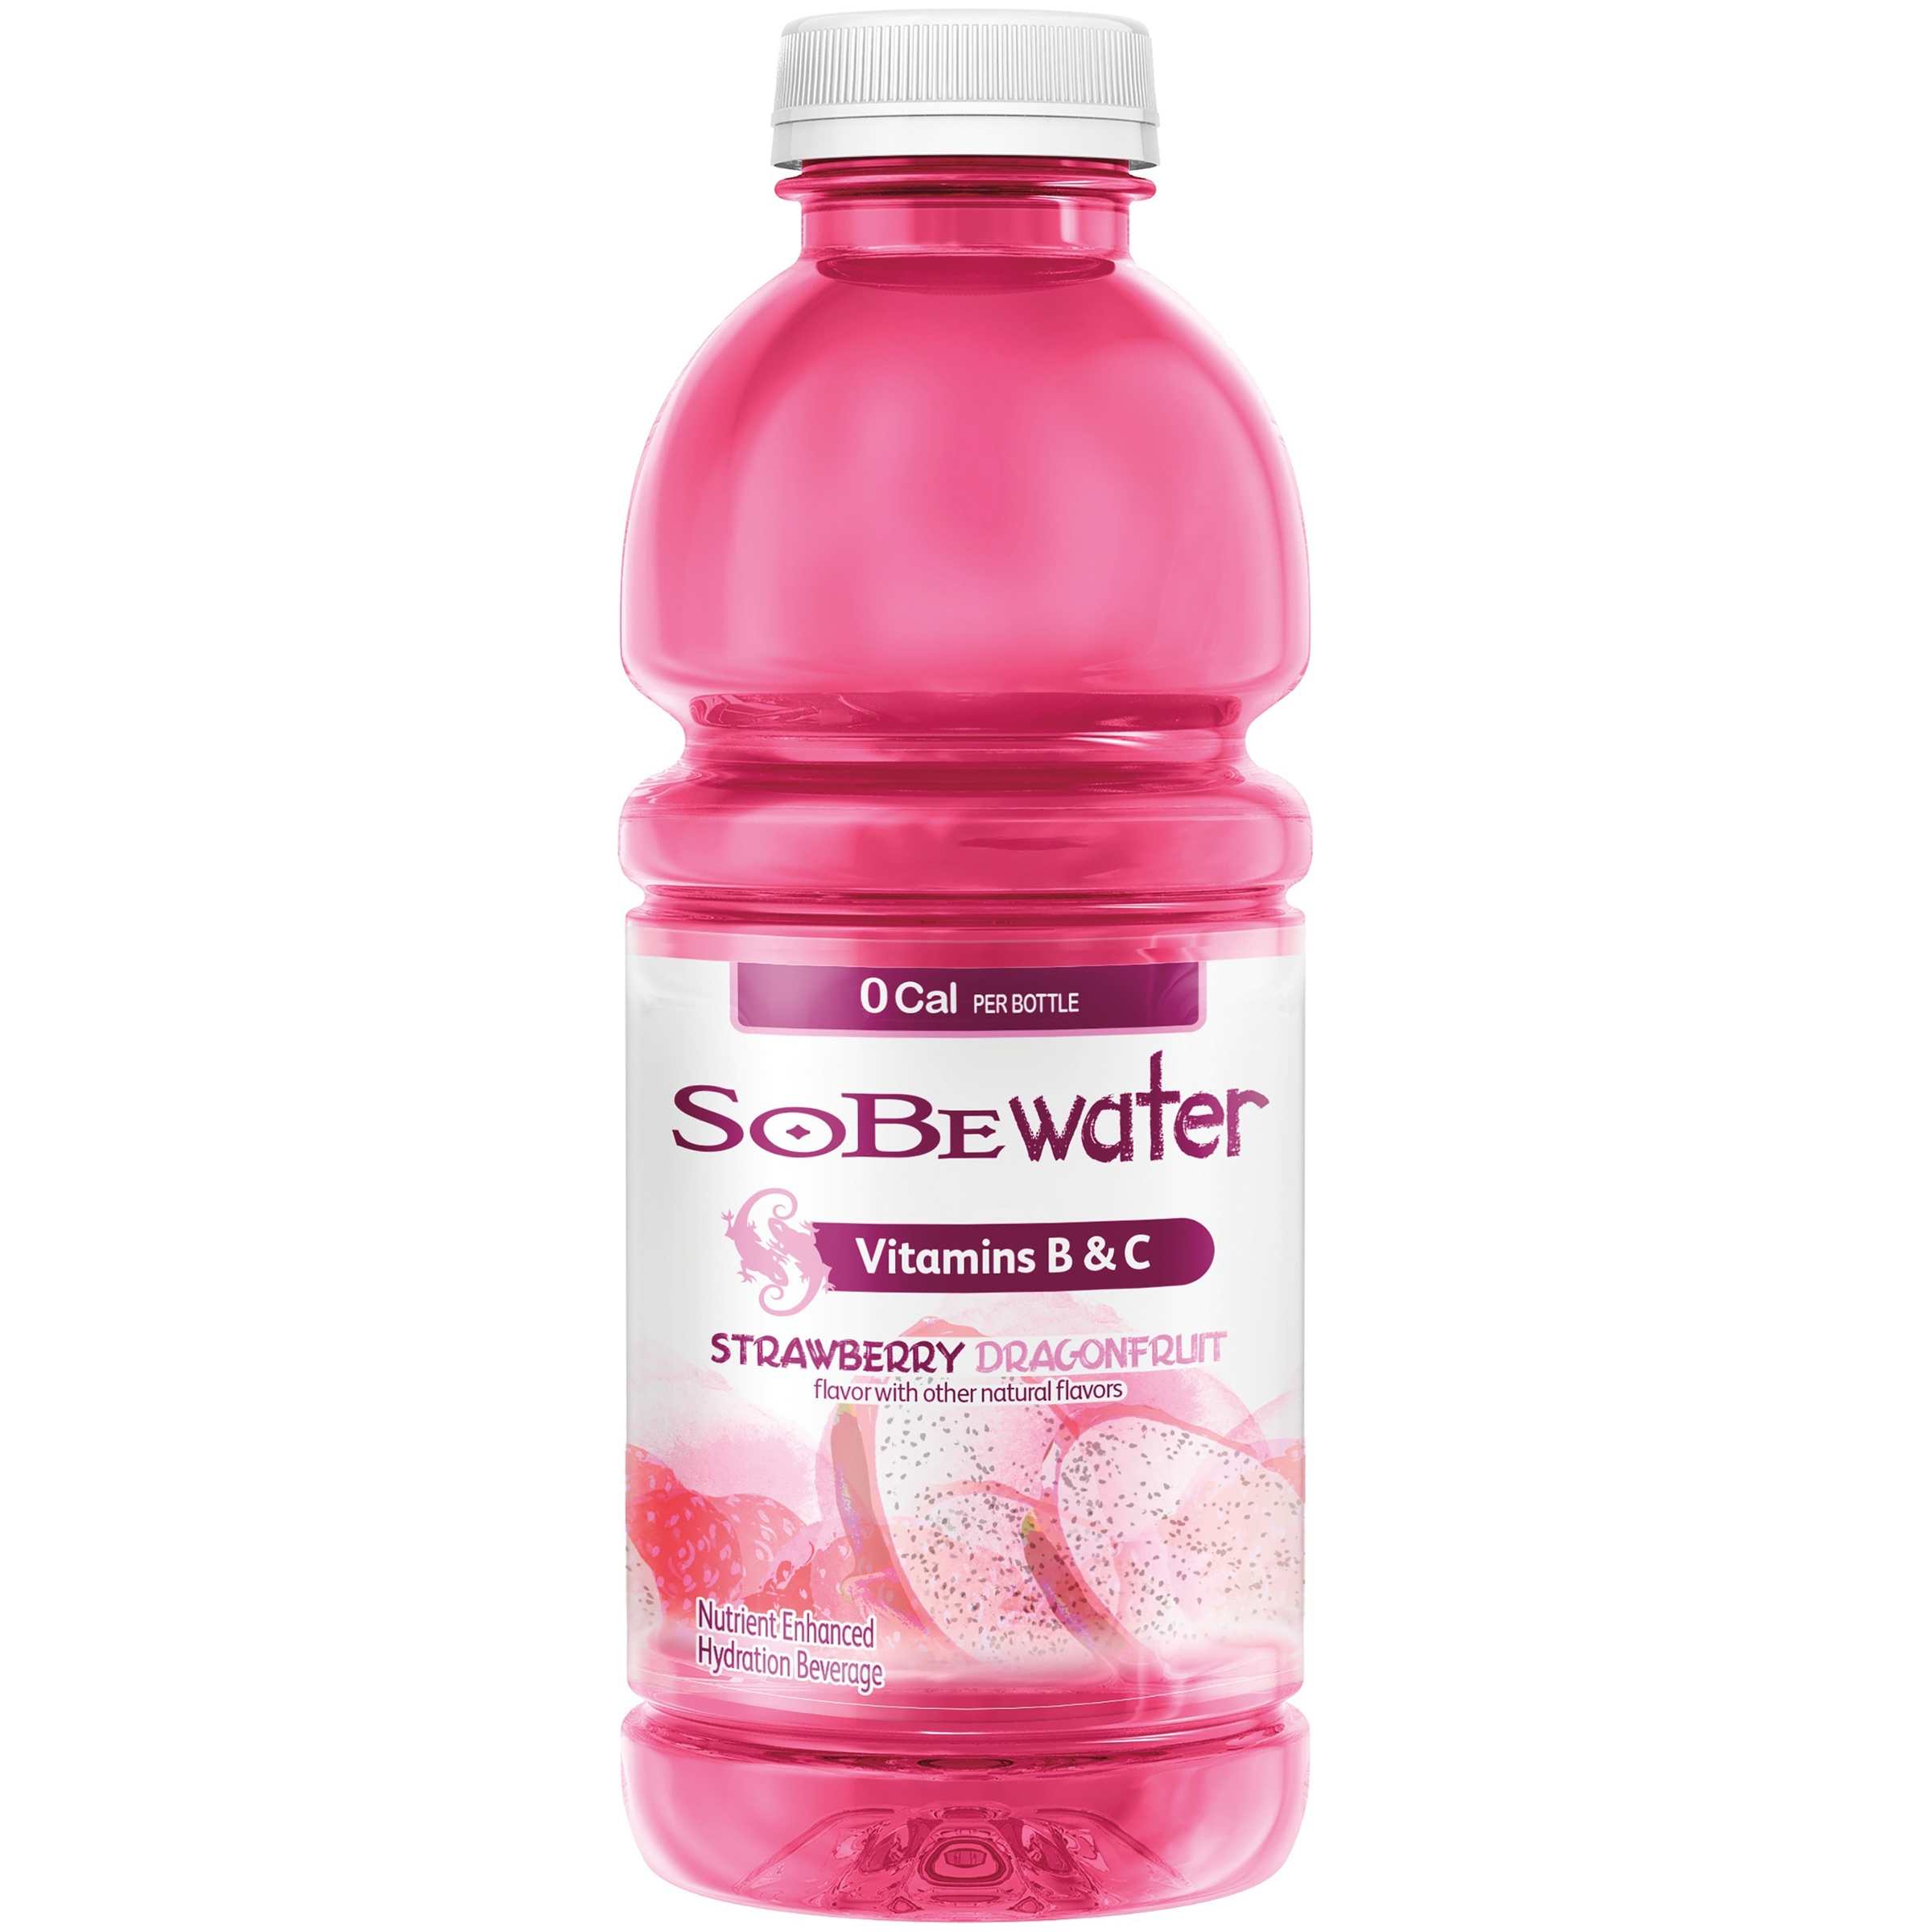 SoBe Lifewater Strawberry Dragonfruit Water Beverage, 20 fl oz